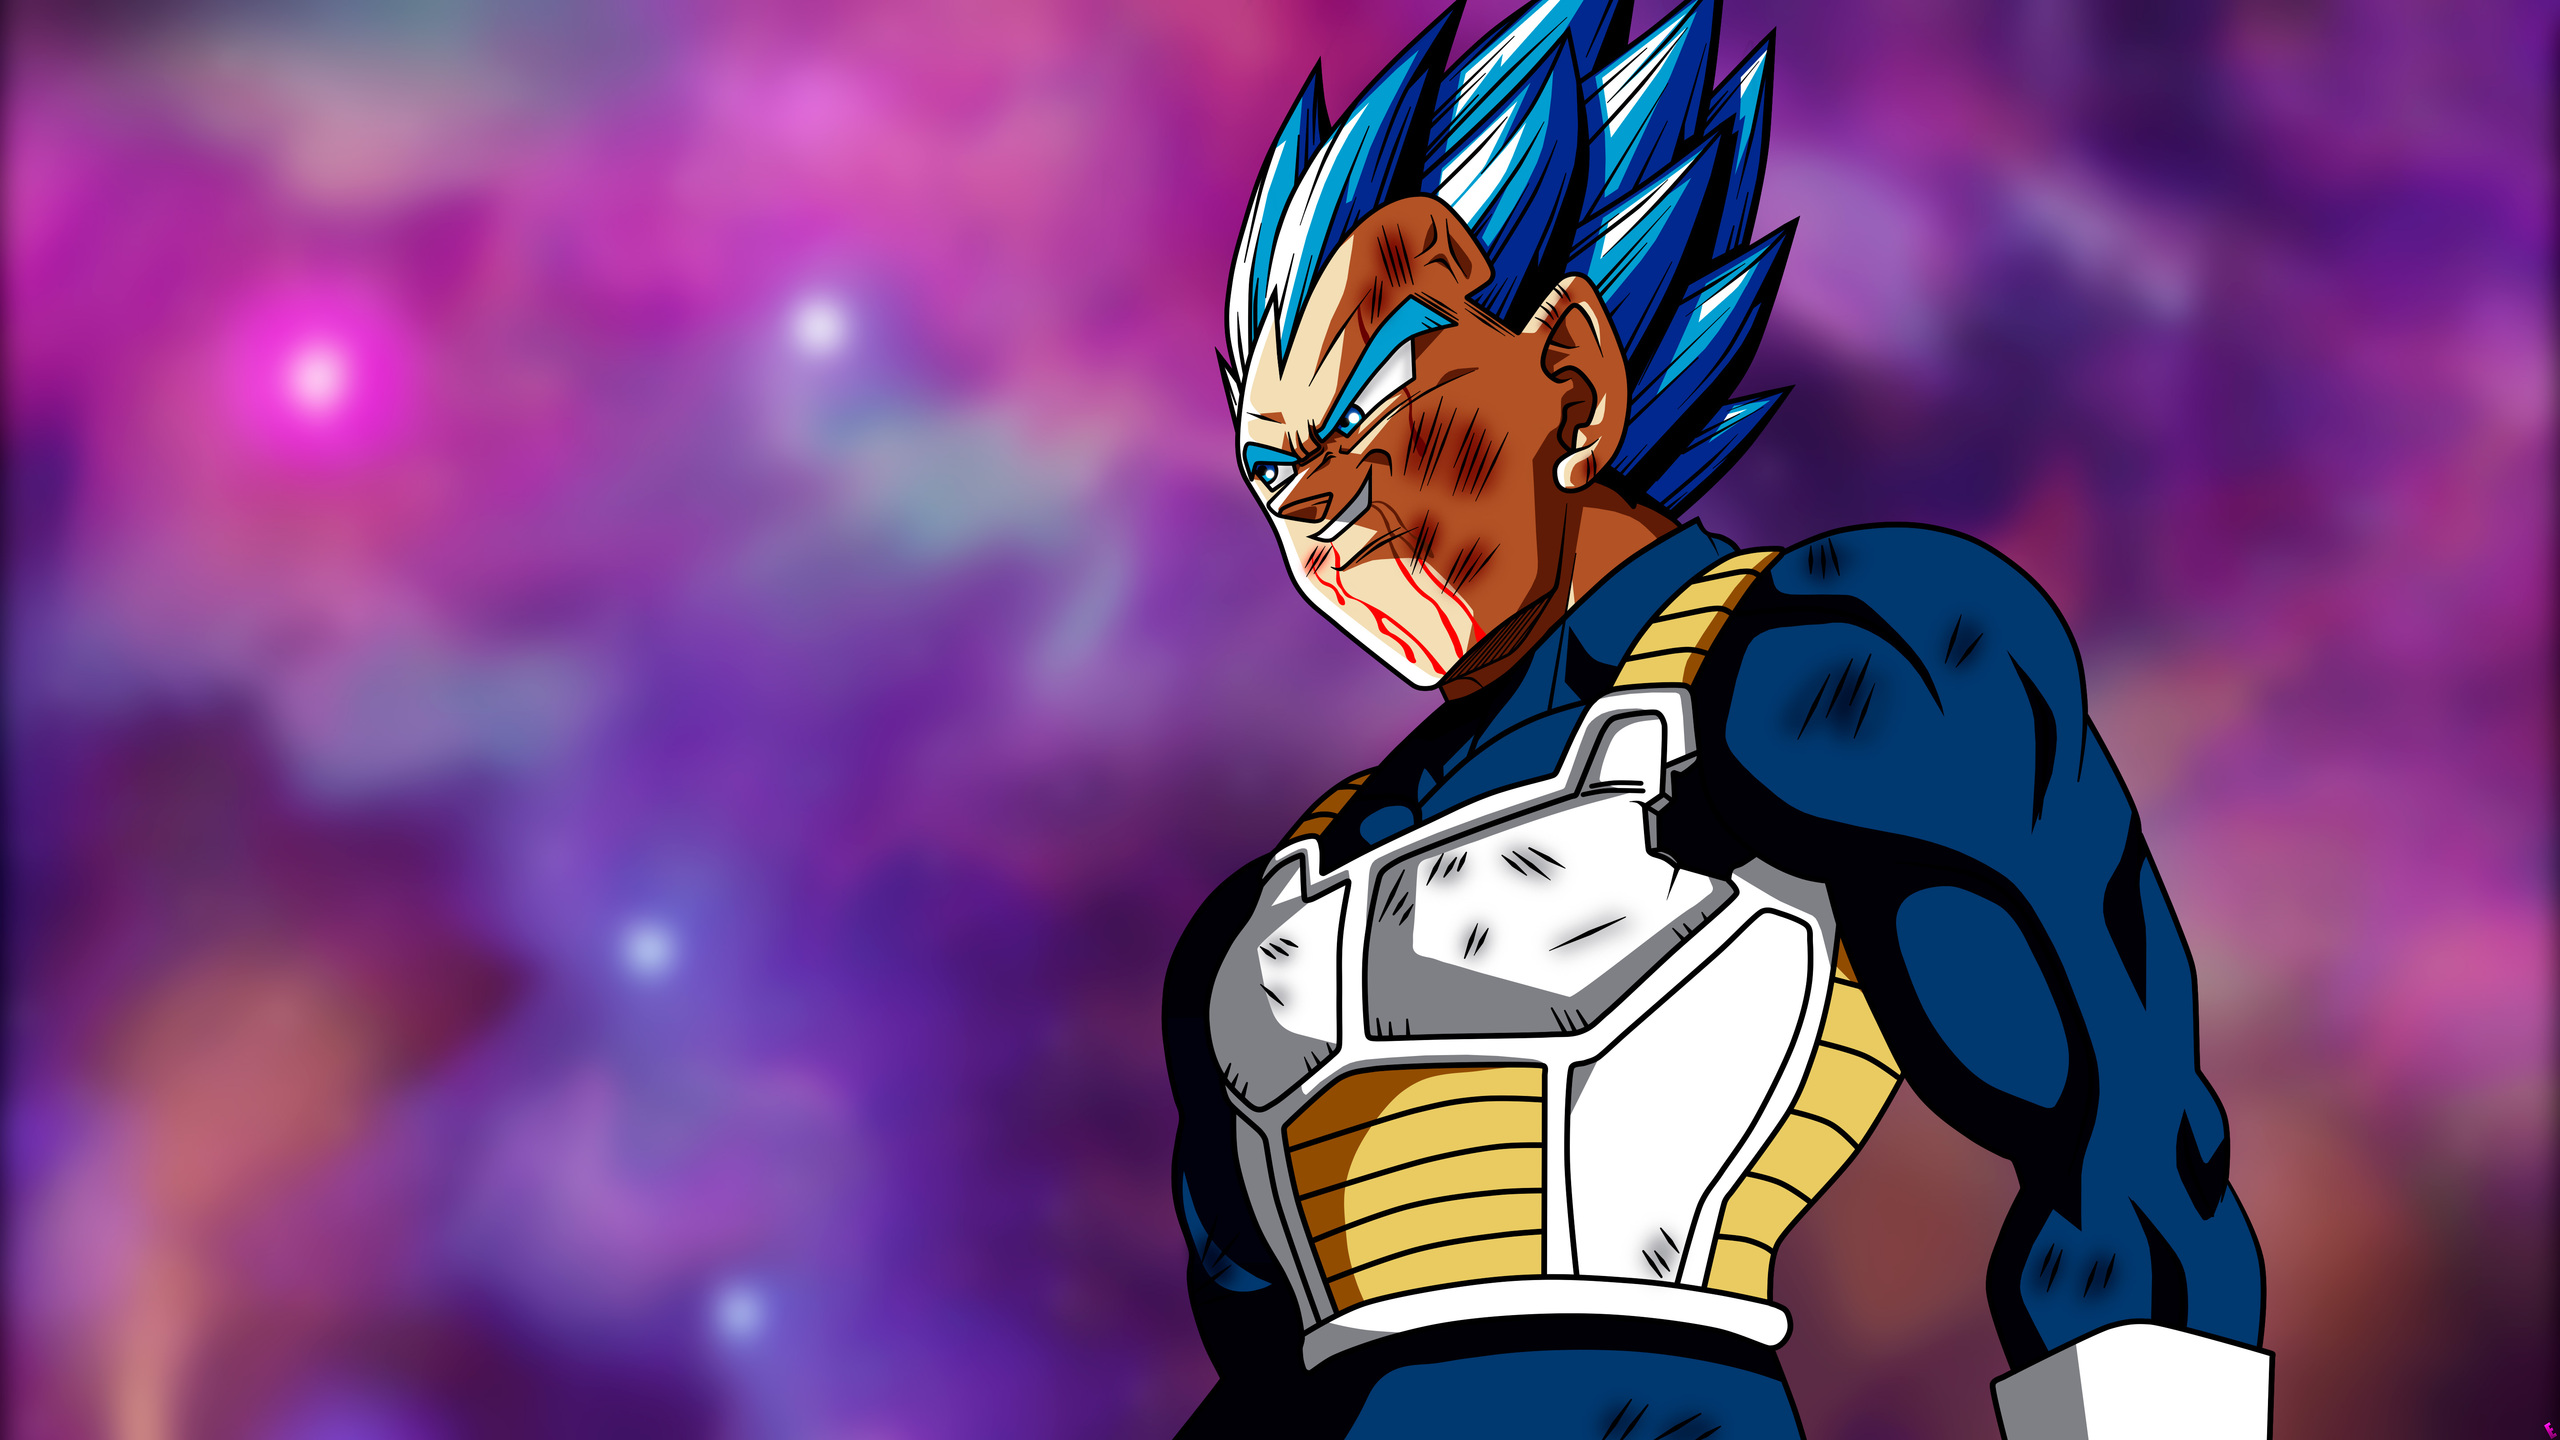 2560x1440 Dragon Ball Super Vegeta 1440p Resolution Hd 4k Wallpapers Images Backgrounds Photos And Pictures